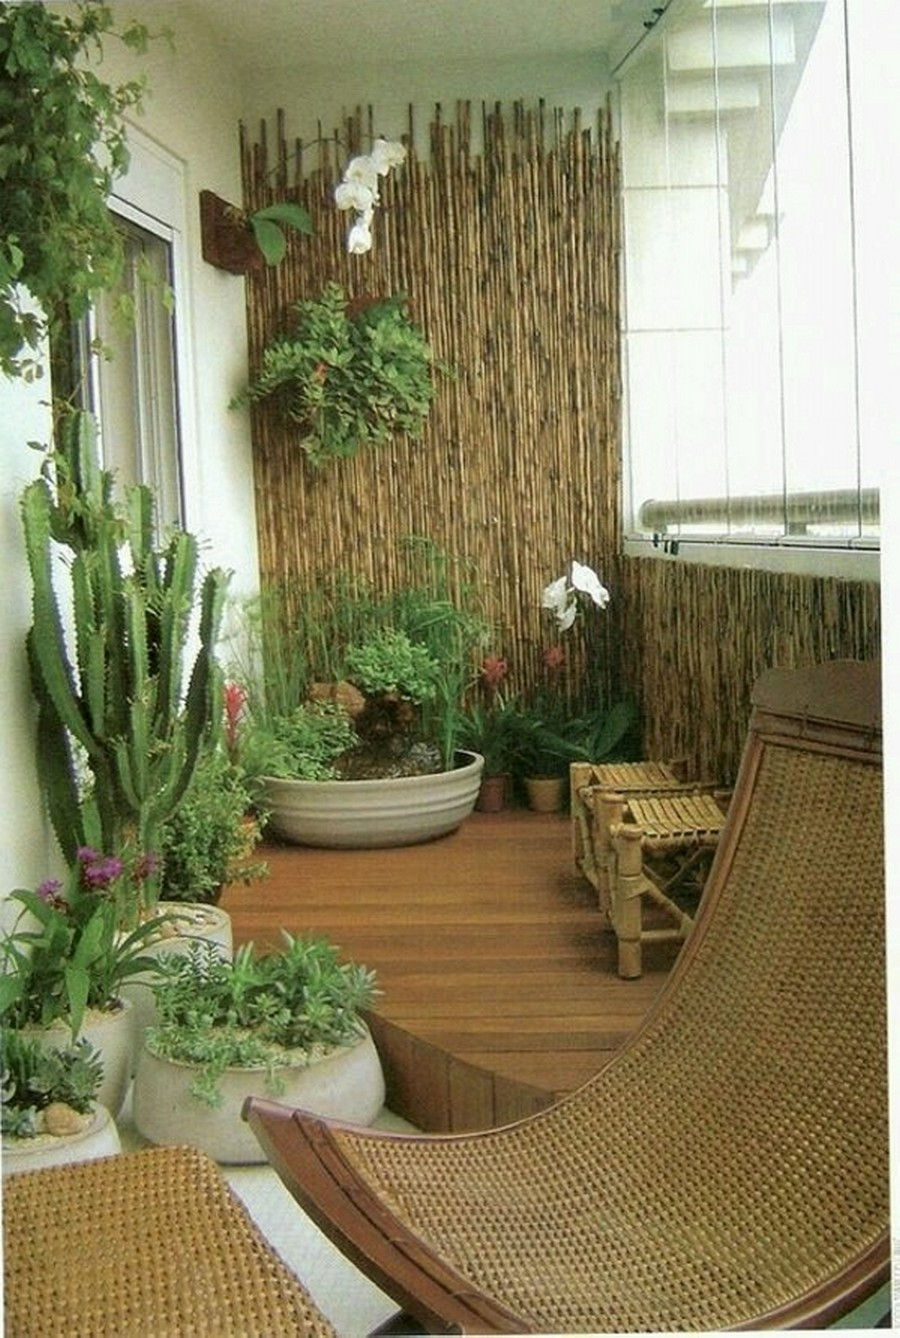 10 clever ways to decorate your balcony area recycled things for Decorative garden accents